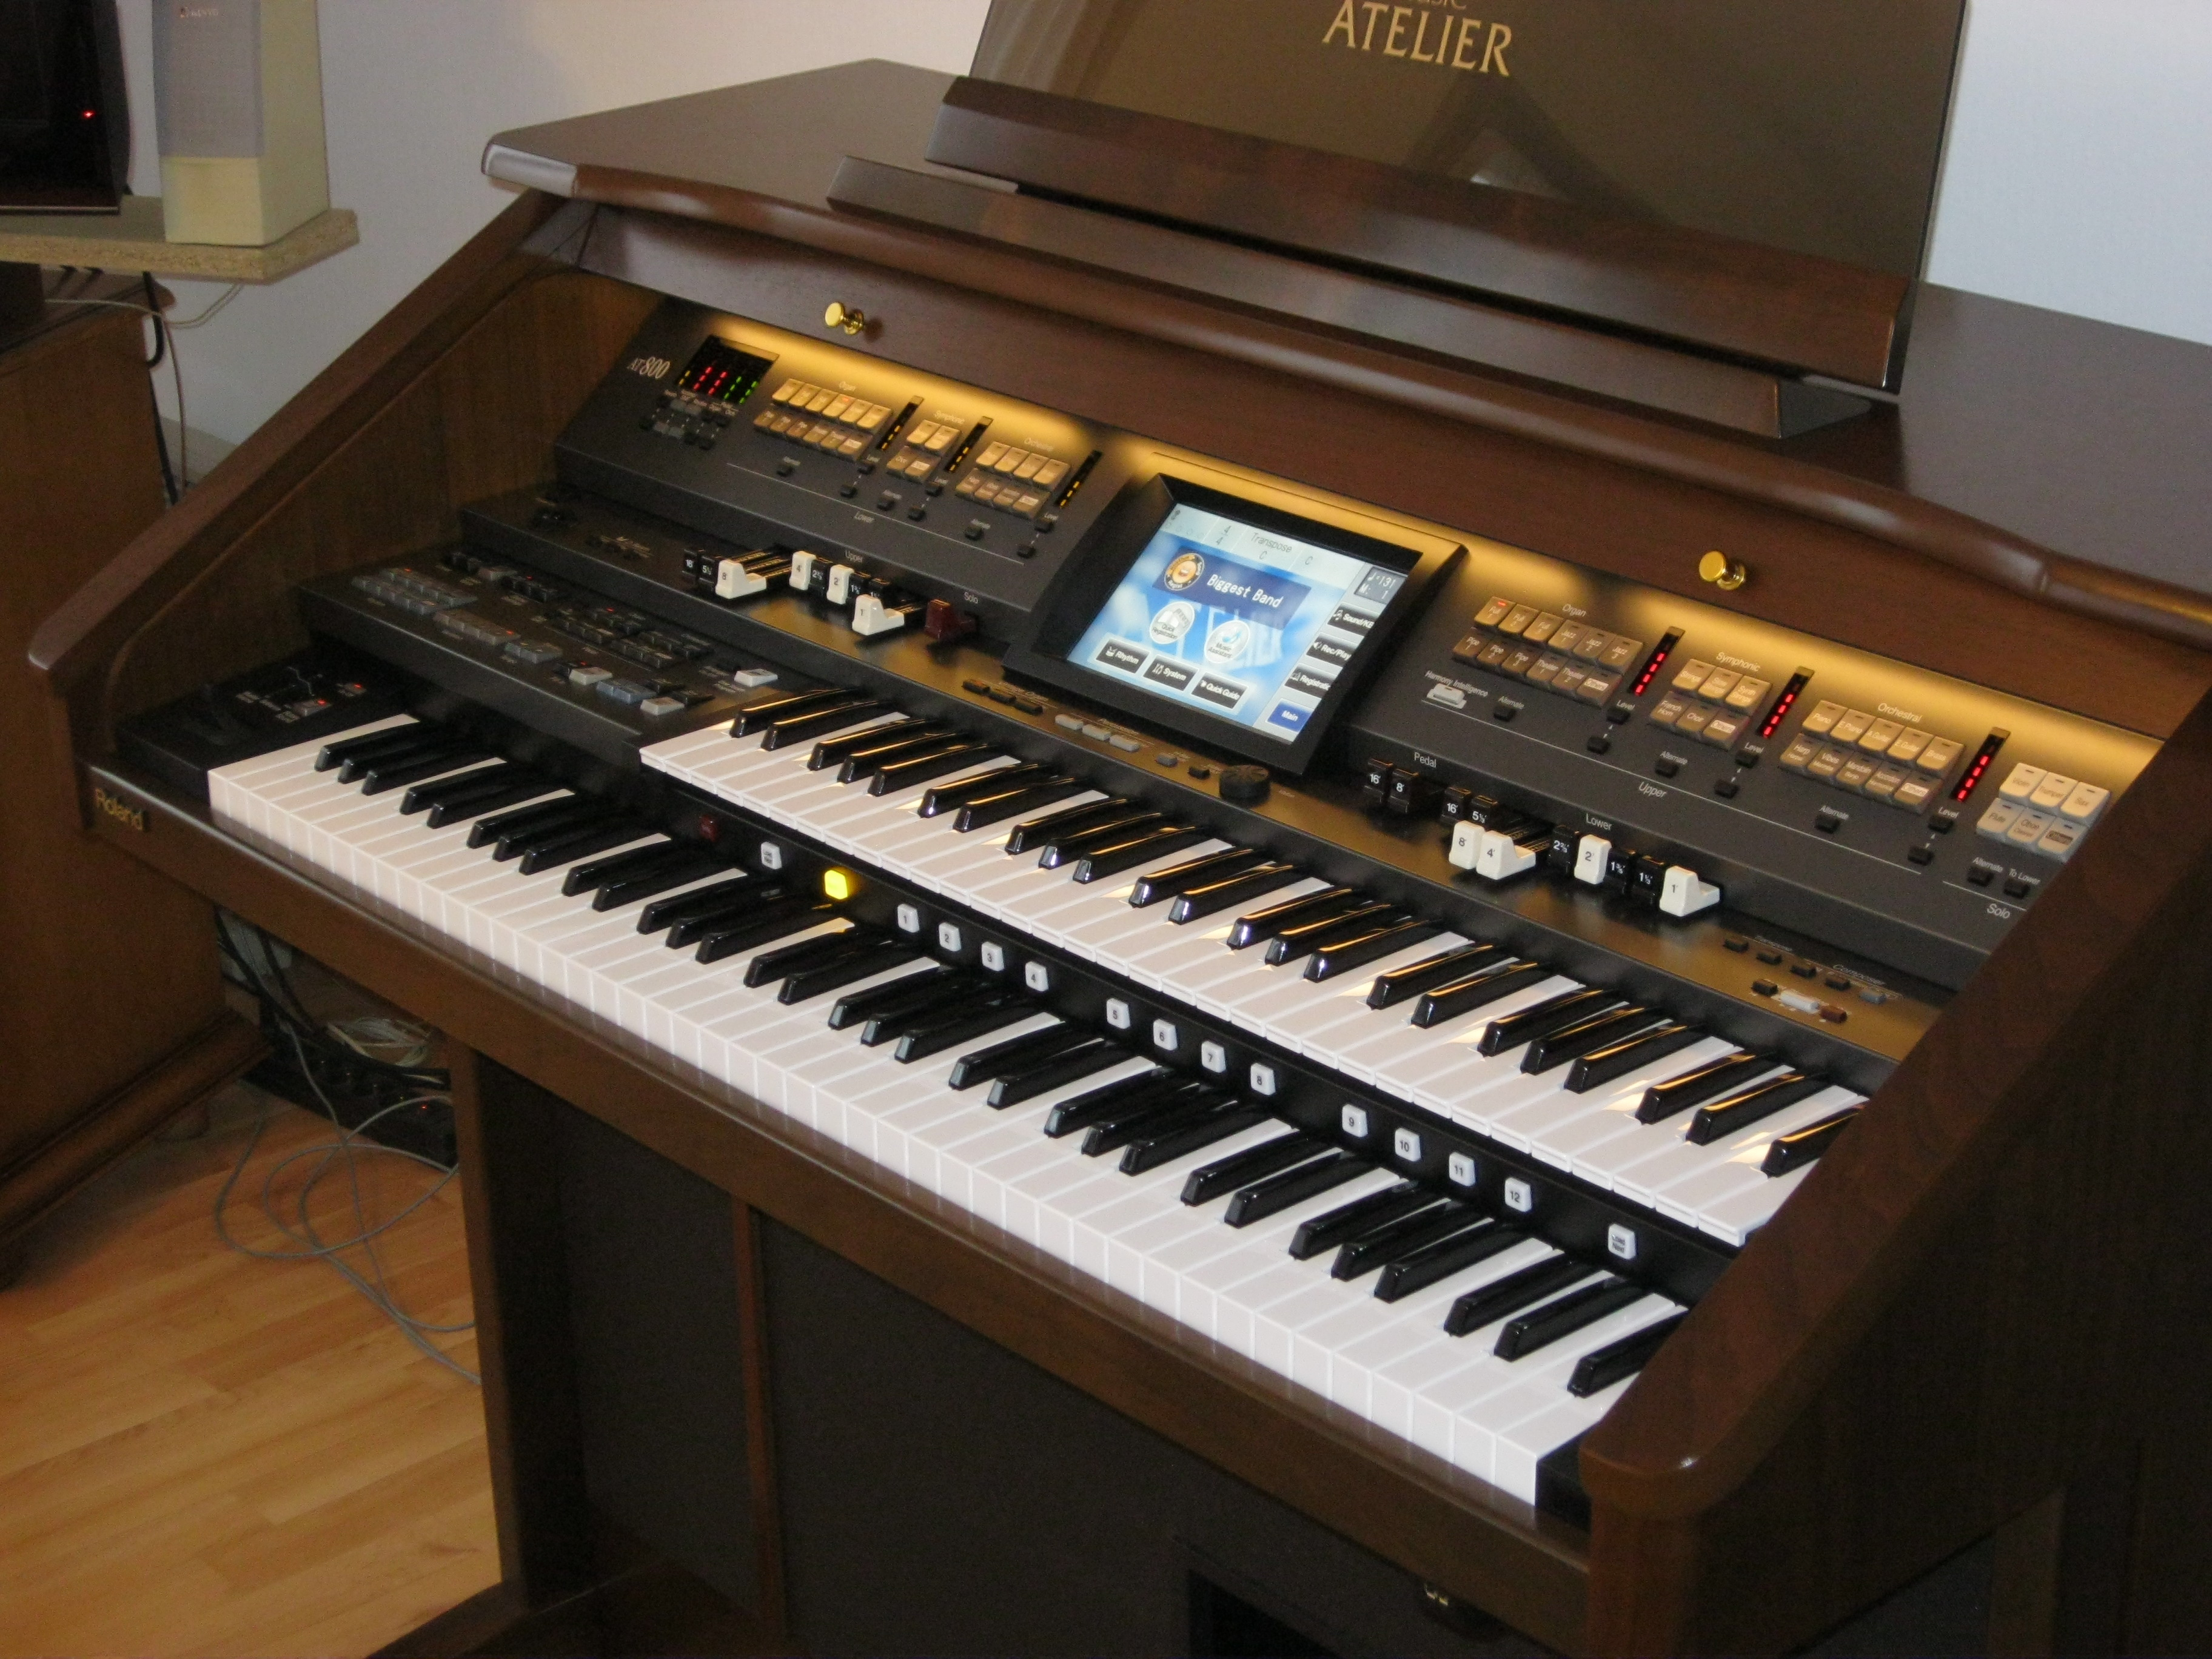 Drivers Update: Roland AT-800 Music Atelier